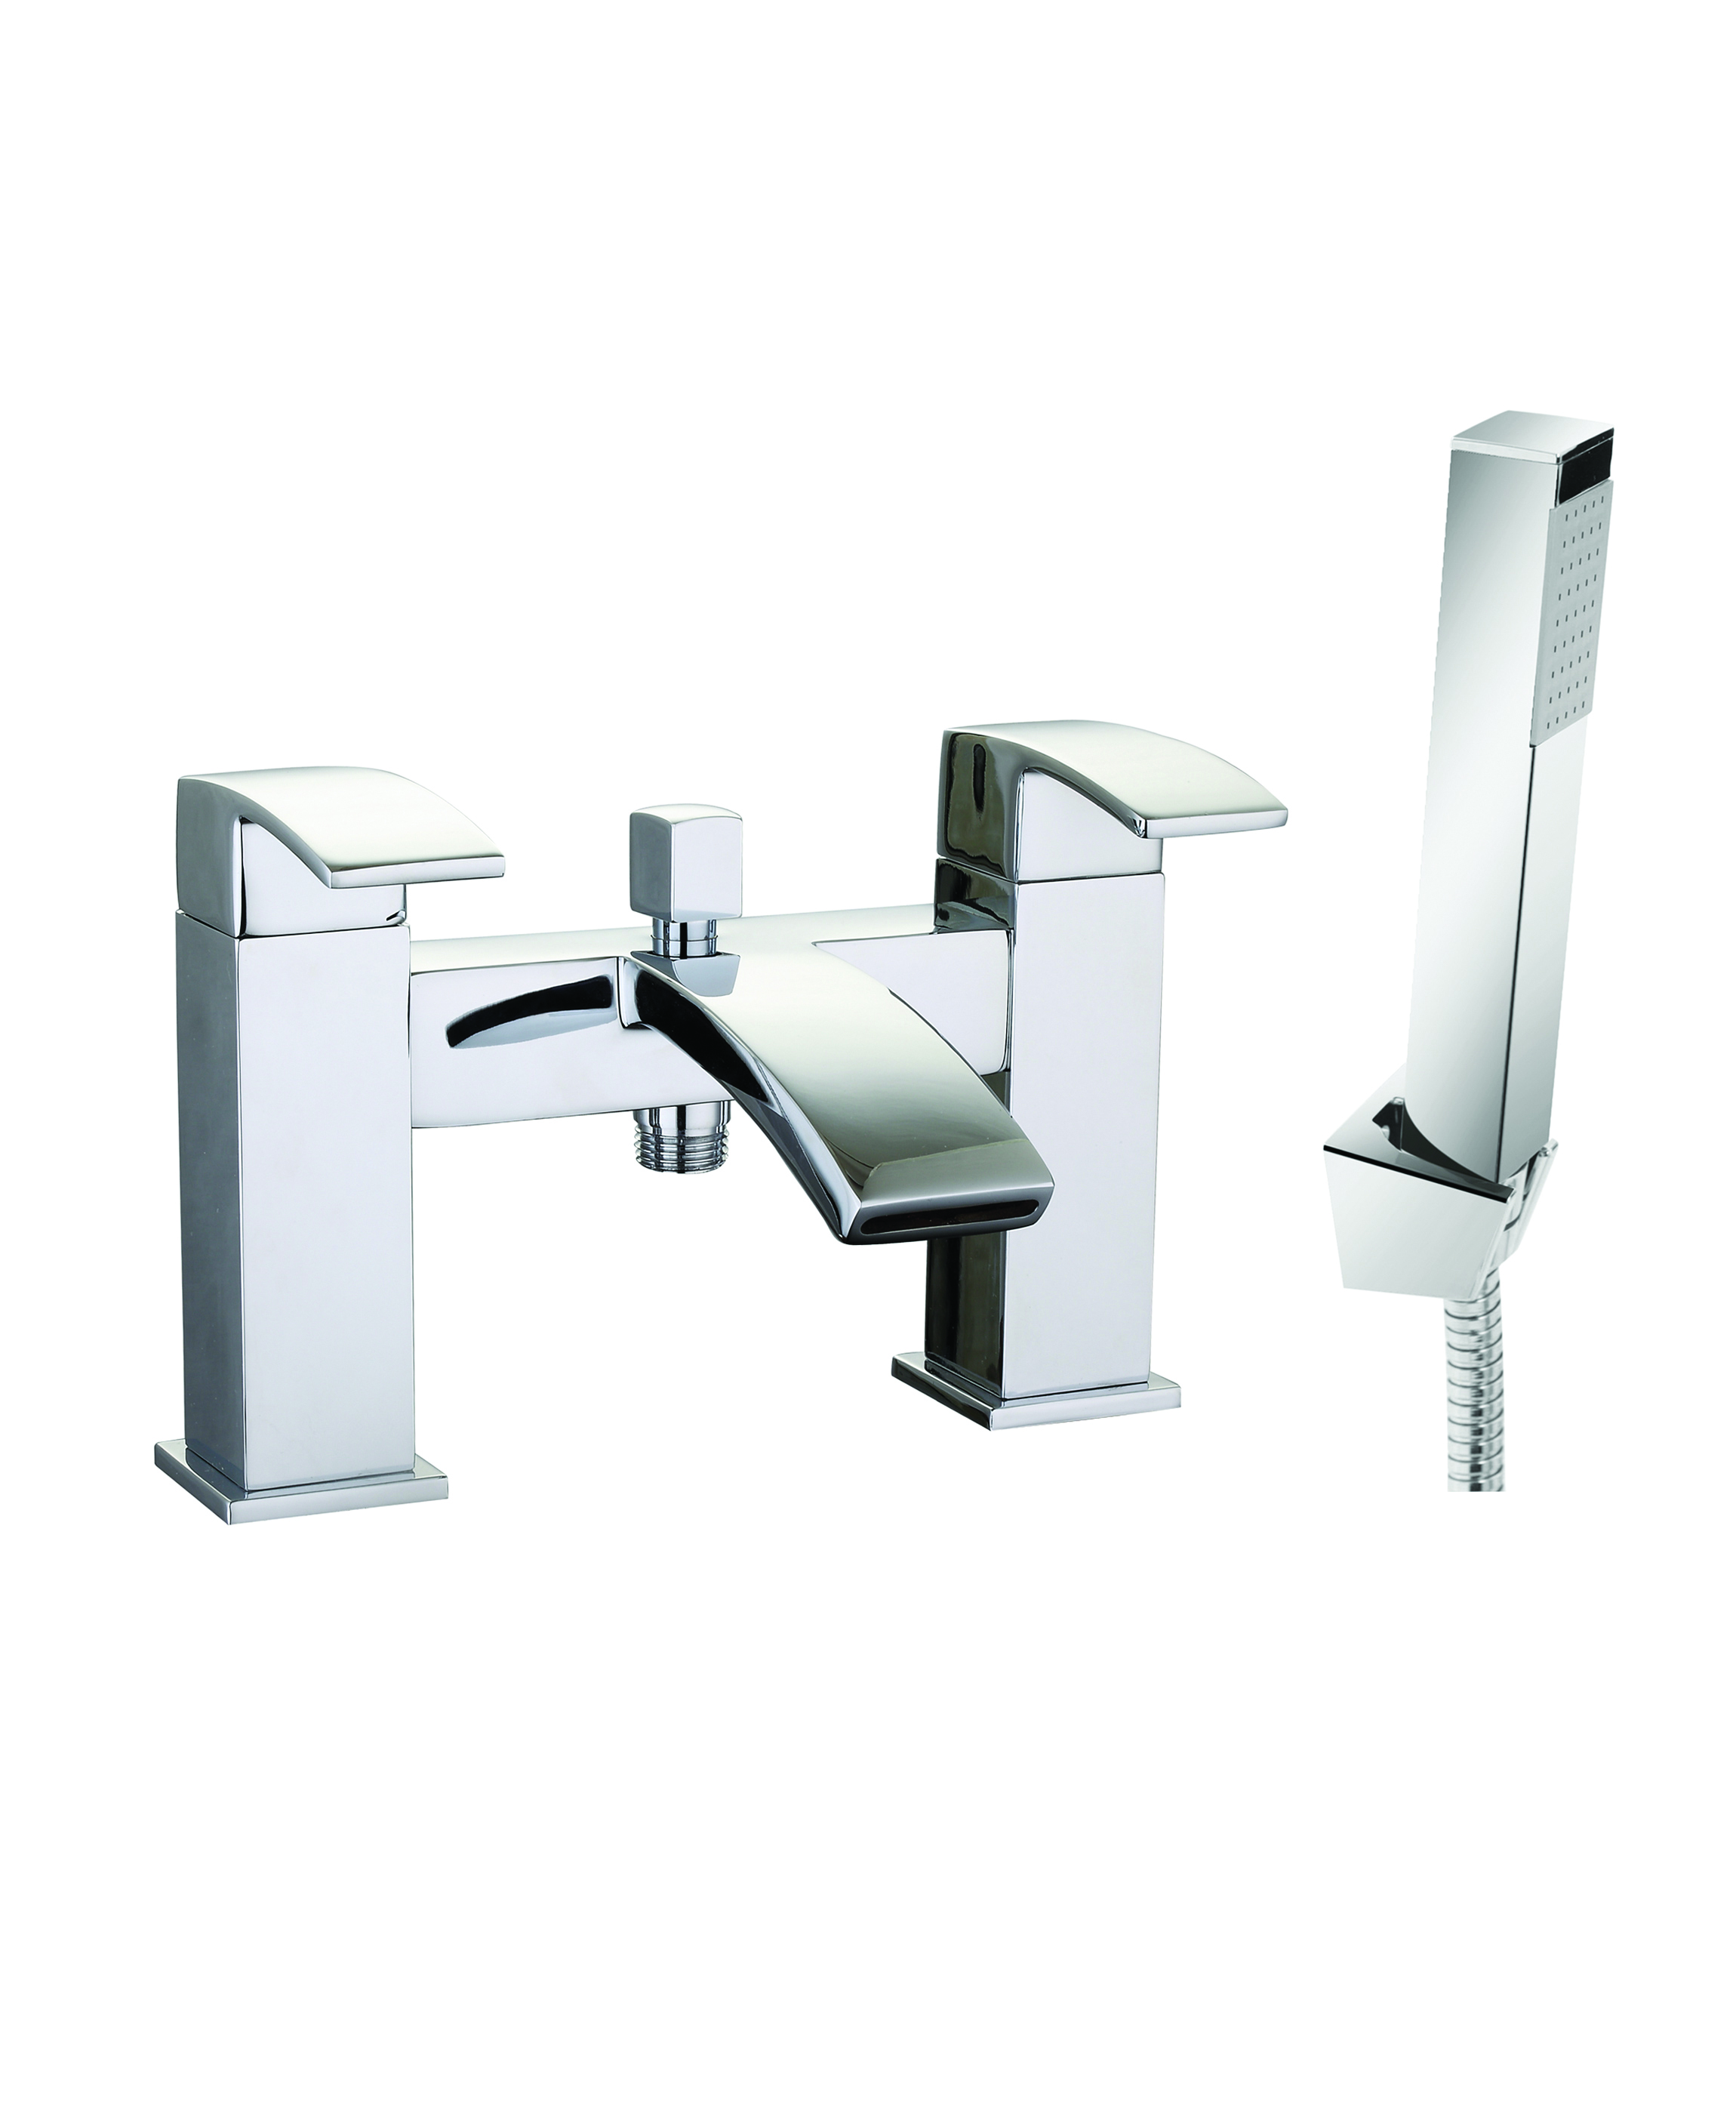 Zen Standard Mono Basin Mixer H Amp V Bathrooms Amp Tiles